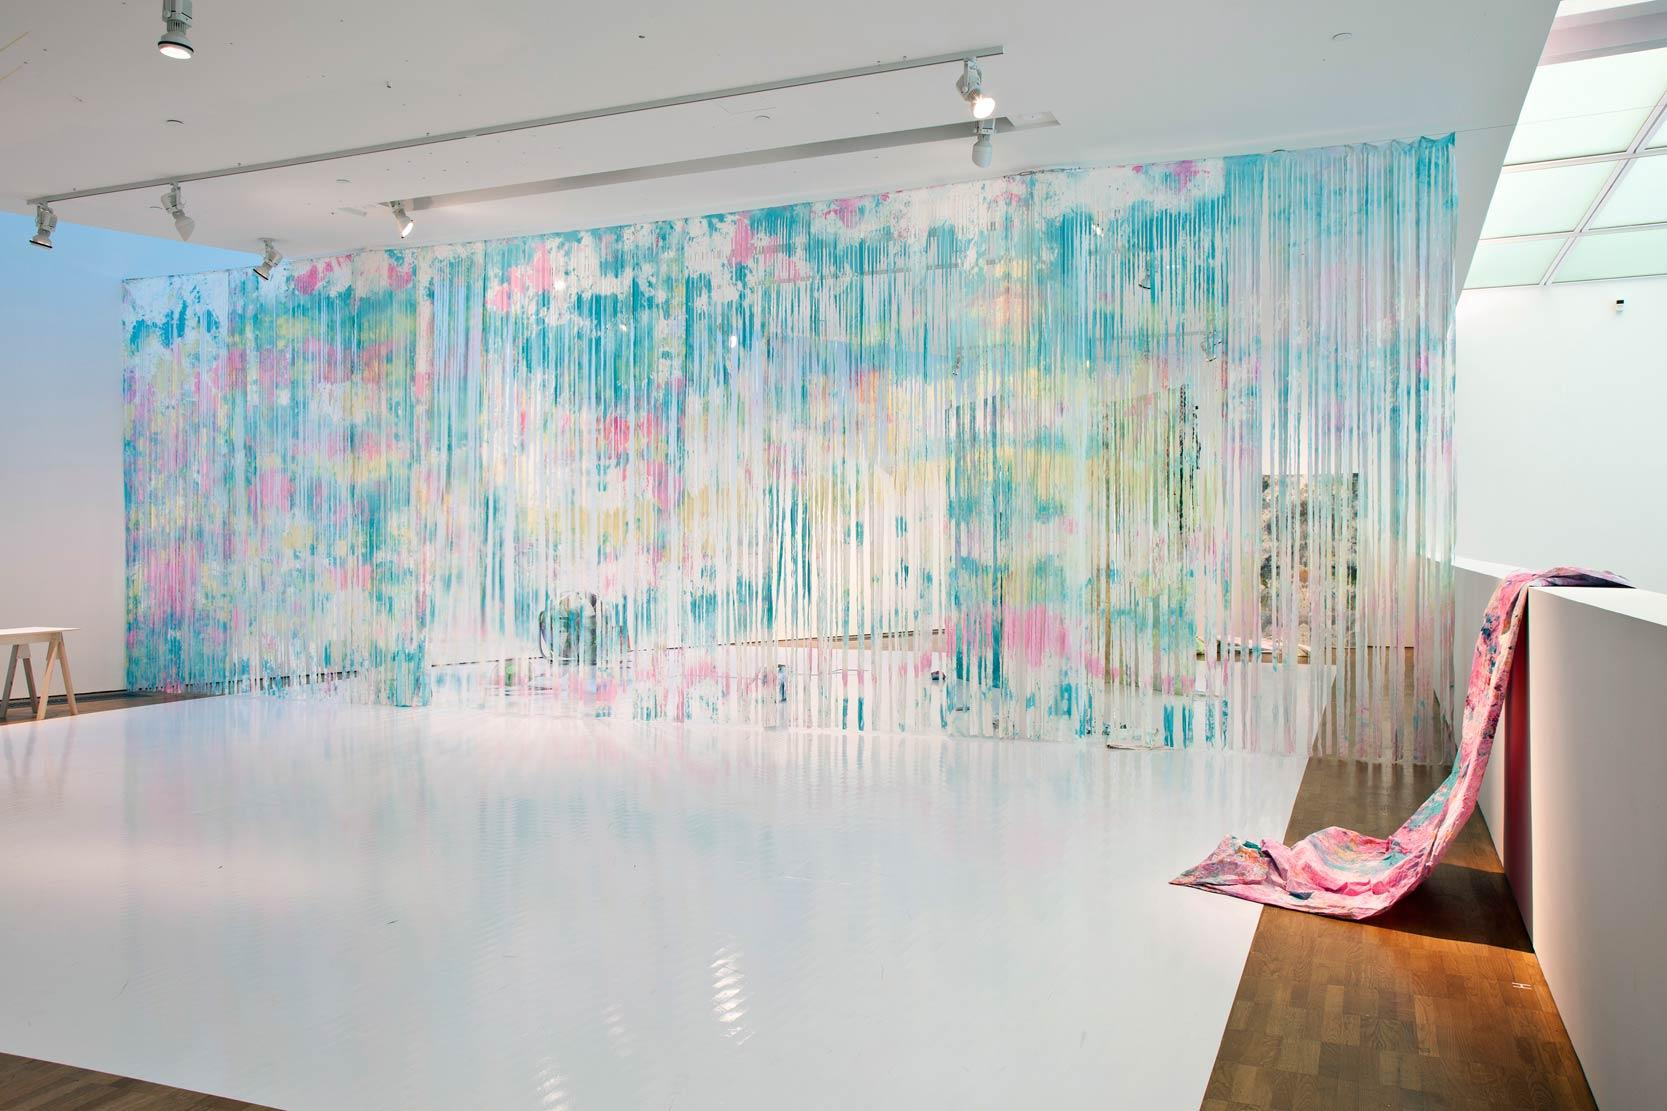 Blue Lagoon exhibition view, 2014. Photo by Anu Vahtra